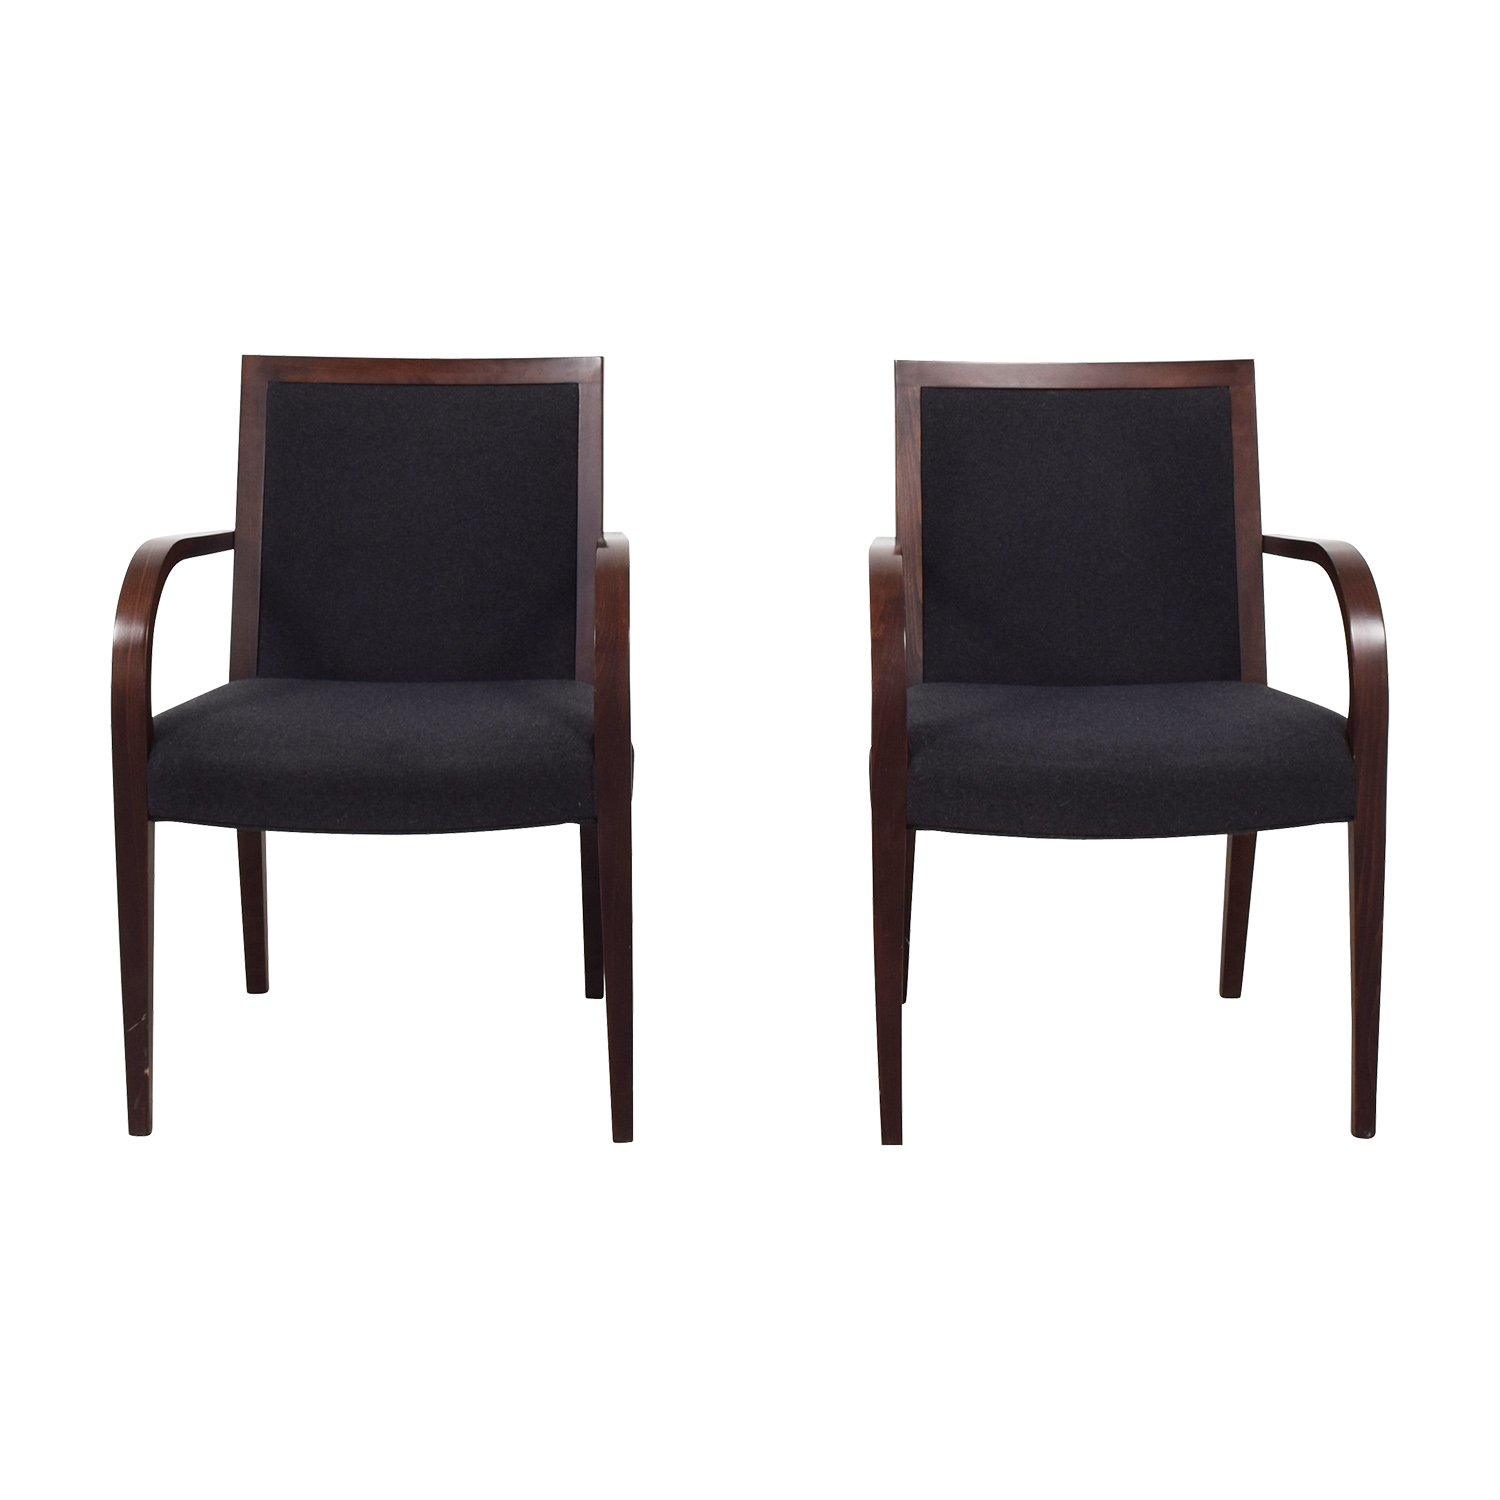 buy Potocco Potocco Nacy Accent Chairs online